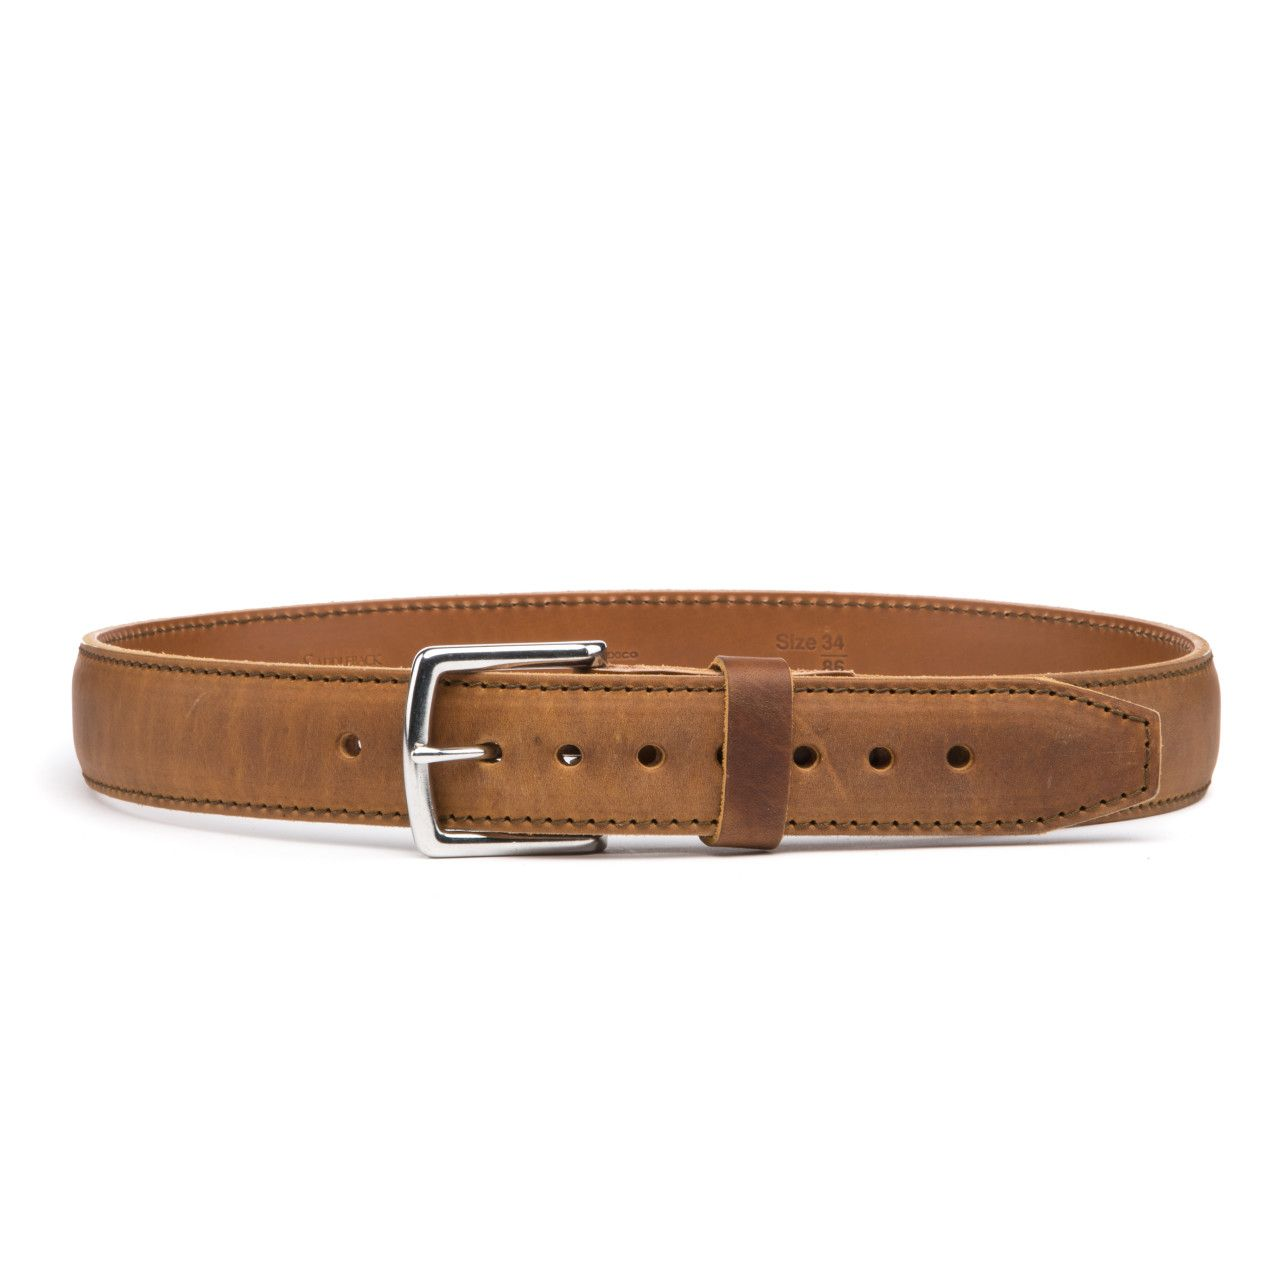 leather tow belt 34 inch in tobacco leather